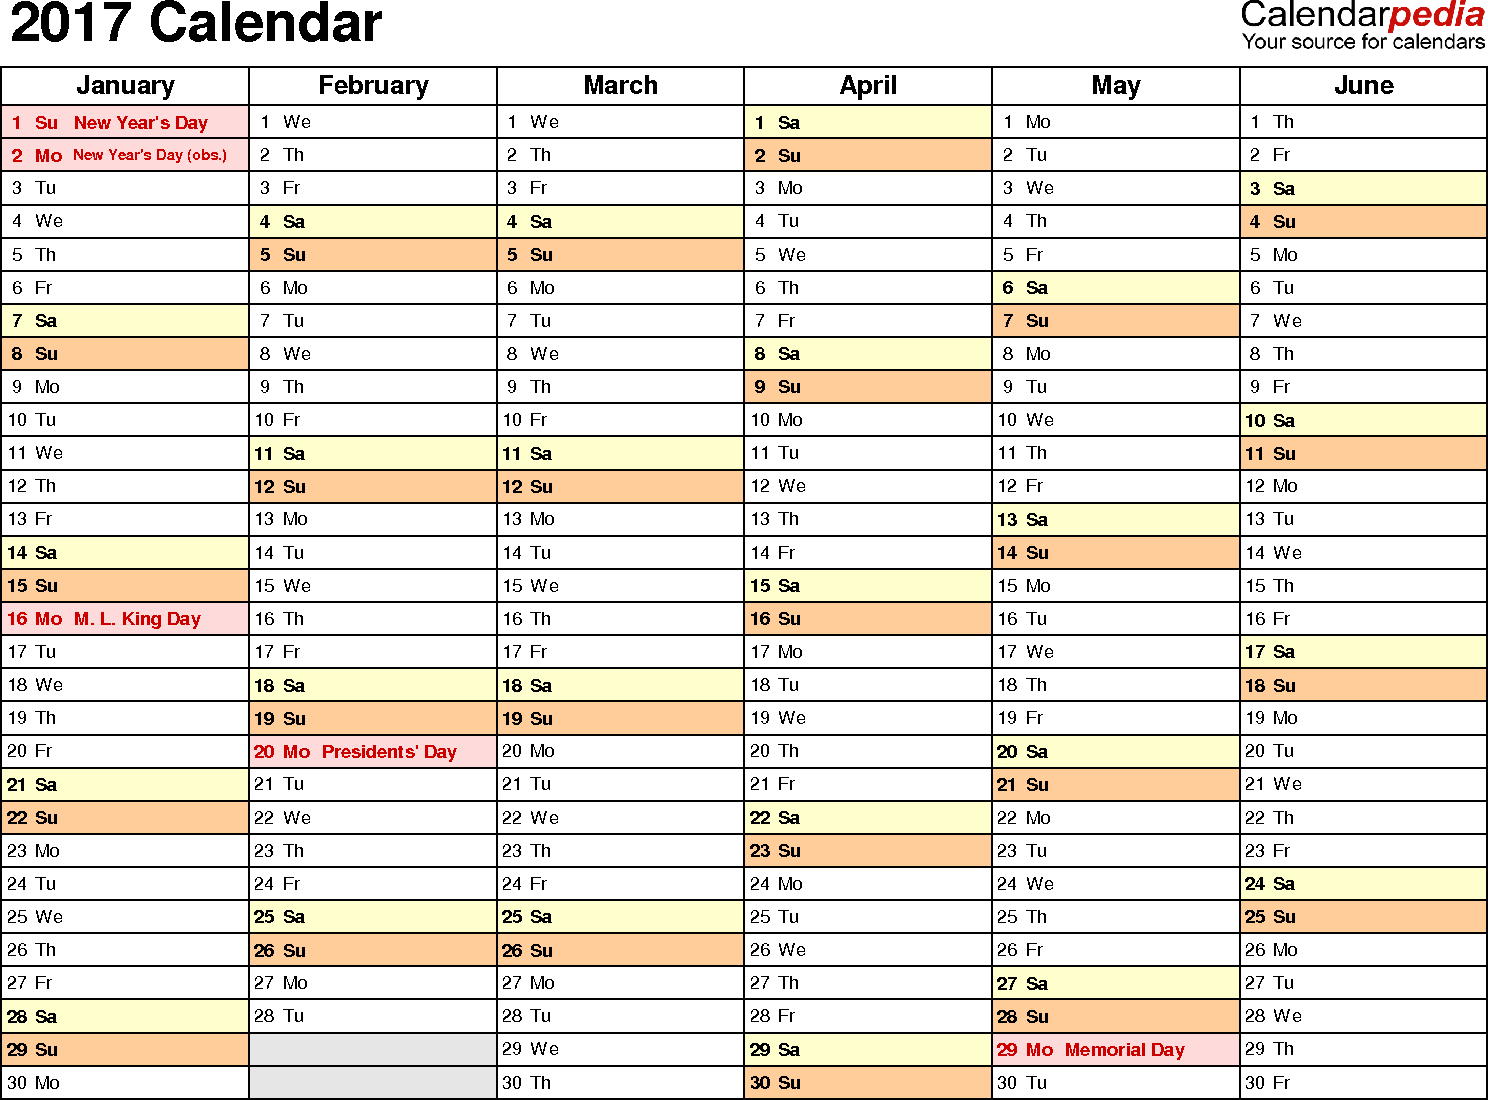 Ediblewildsus  Wonderful  Calendar  Download  Free Printable Excel Templates Xls With Great Template   Calendar For Excel Months Horizontally  Pages Landscape Orientation With Cool Value Not Available Error Excel Also How Do You Subtract On Excel In Addition Remove Duplicate Rows Excel And Power Symbol In Excel As Well As Pivot Table In Excel Sample Data Additionally Excel Match  Columns From Calendarpediacom With Ediblewildsus  Great  Calendar  Download  Free Printable Excel Templates Xls With Cool Template   Calendar For Excel Months Horizontally  Pages Landscape Orientation And Wonderful Value Not Available Error Excel Also How Do You Subtract On Excel In Addition Remove Duplicate Rows Excel From Calendarpediacom